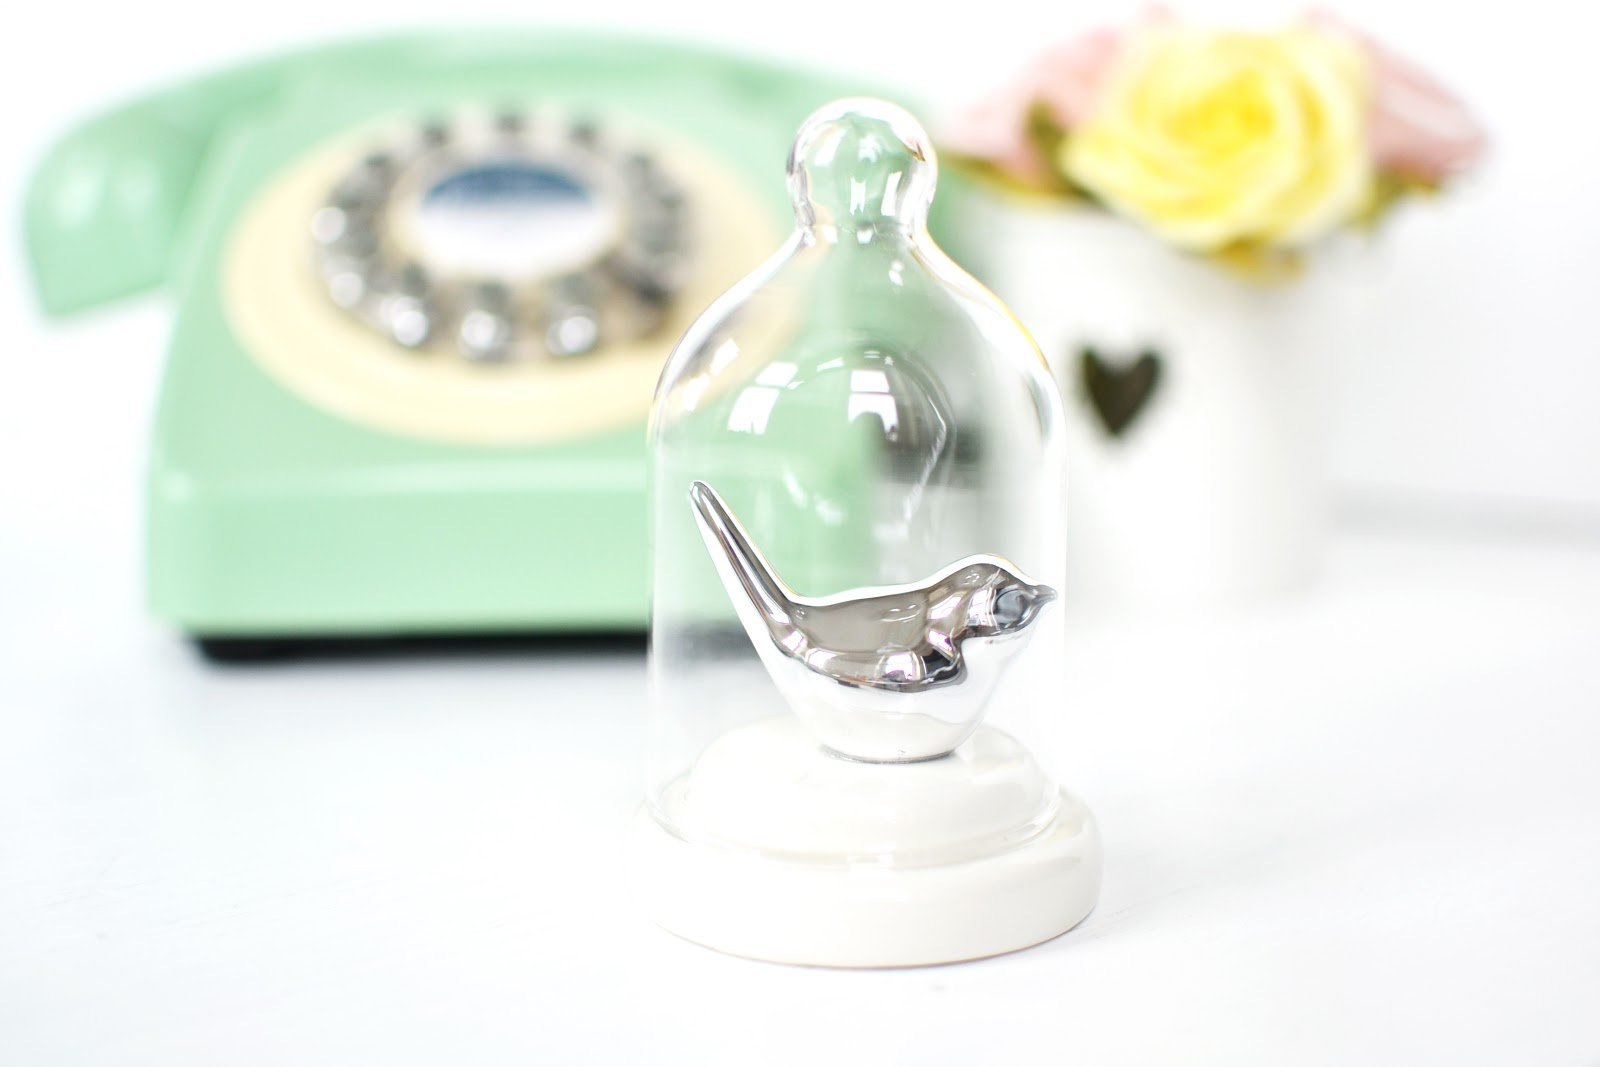 avon bird bell jar ornament, avon homeware